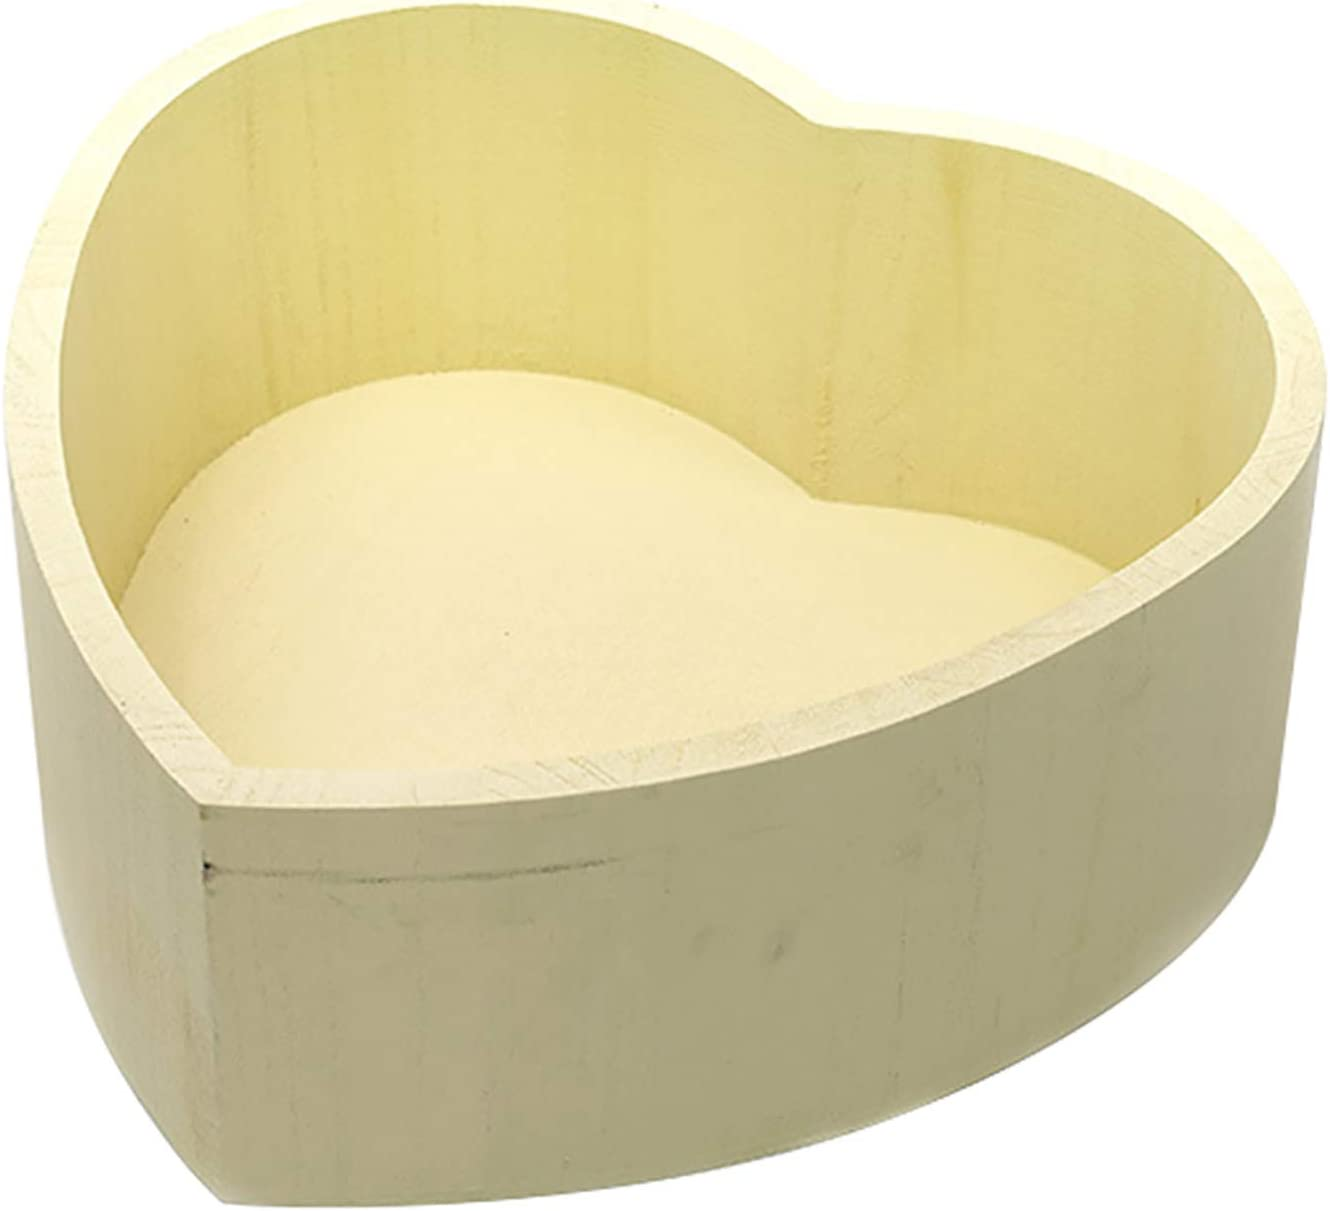 Newborn Props Photography Wooden Indefinitely Bowl Bed Our shop OFFers the best service Shaped Pos Heart Baby